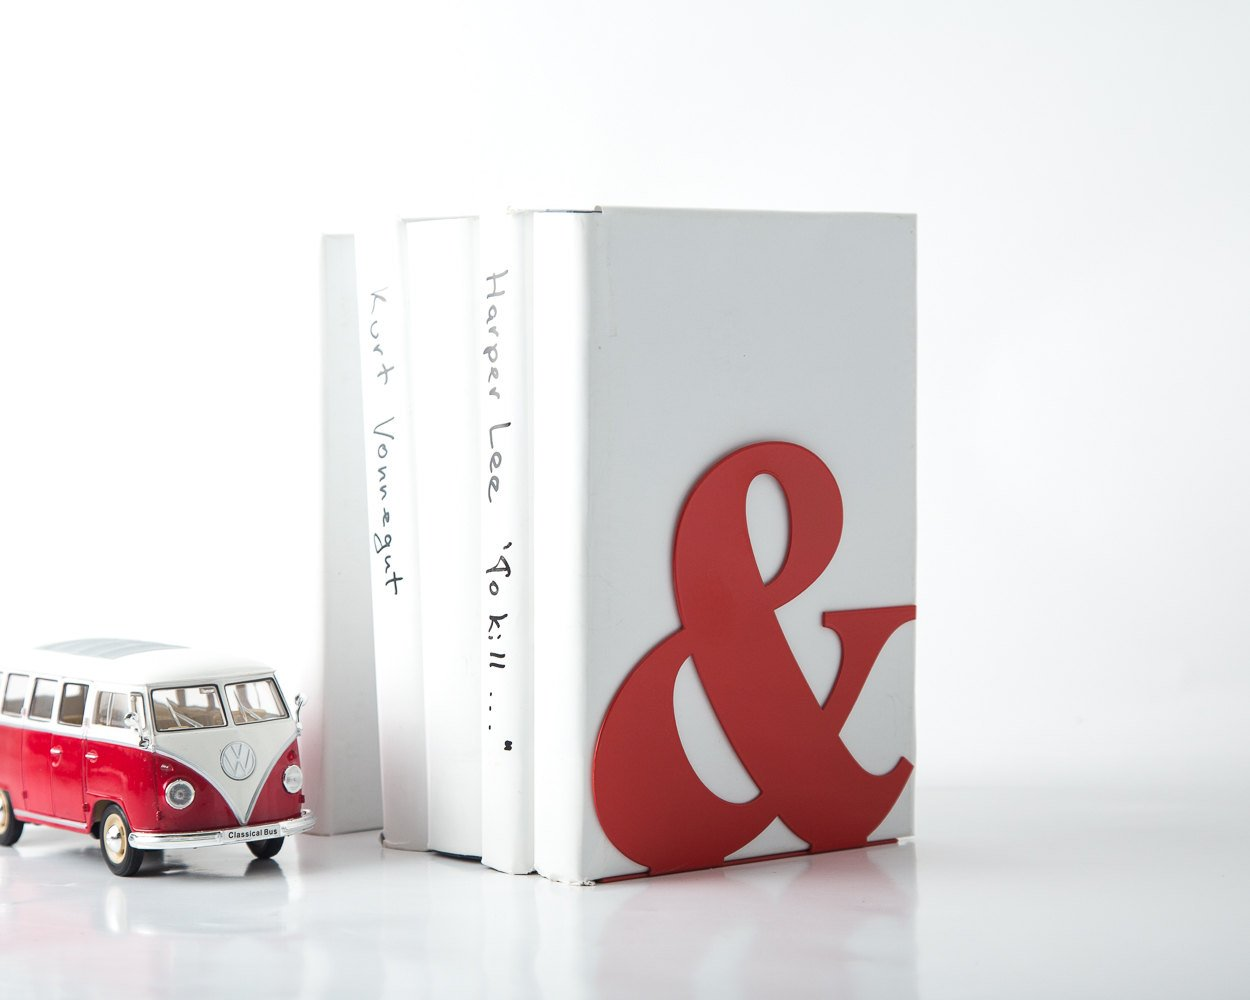 Metal Bookend -&- Ampersand - functional decor for modern home// red powder coated laser cut metal // housewarming present // FREE SHIPPING